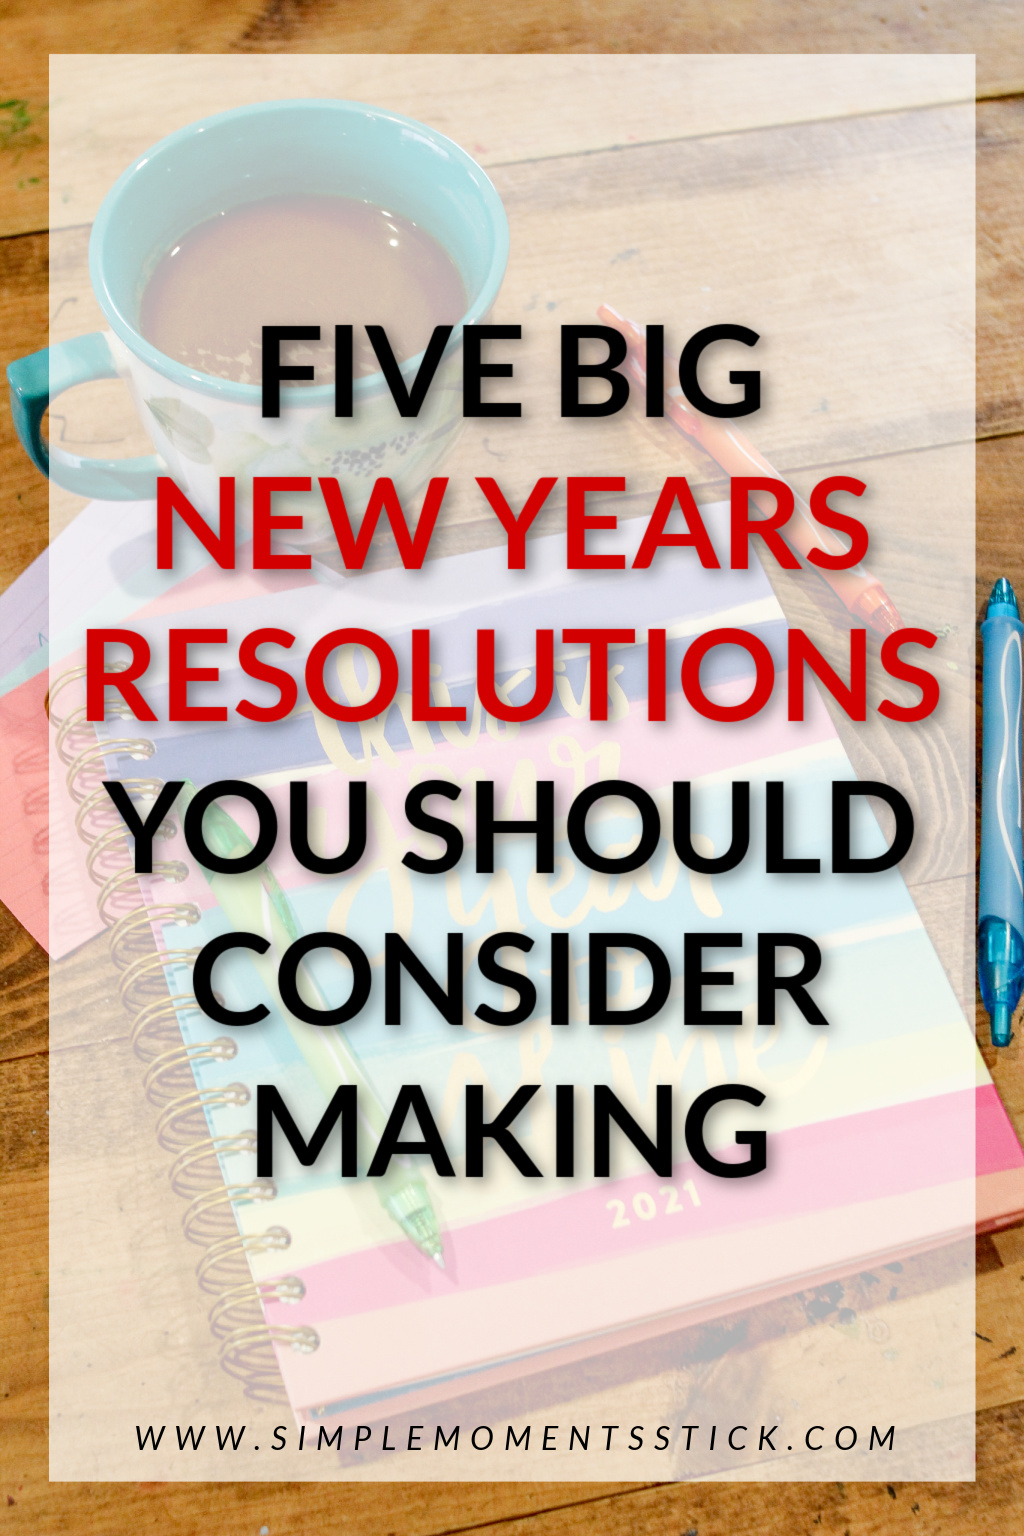 New years resolutions ideas. Ideas for new years goals. Plans for the new year. Big new years goals